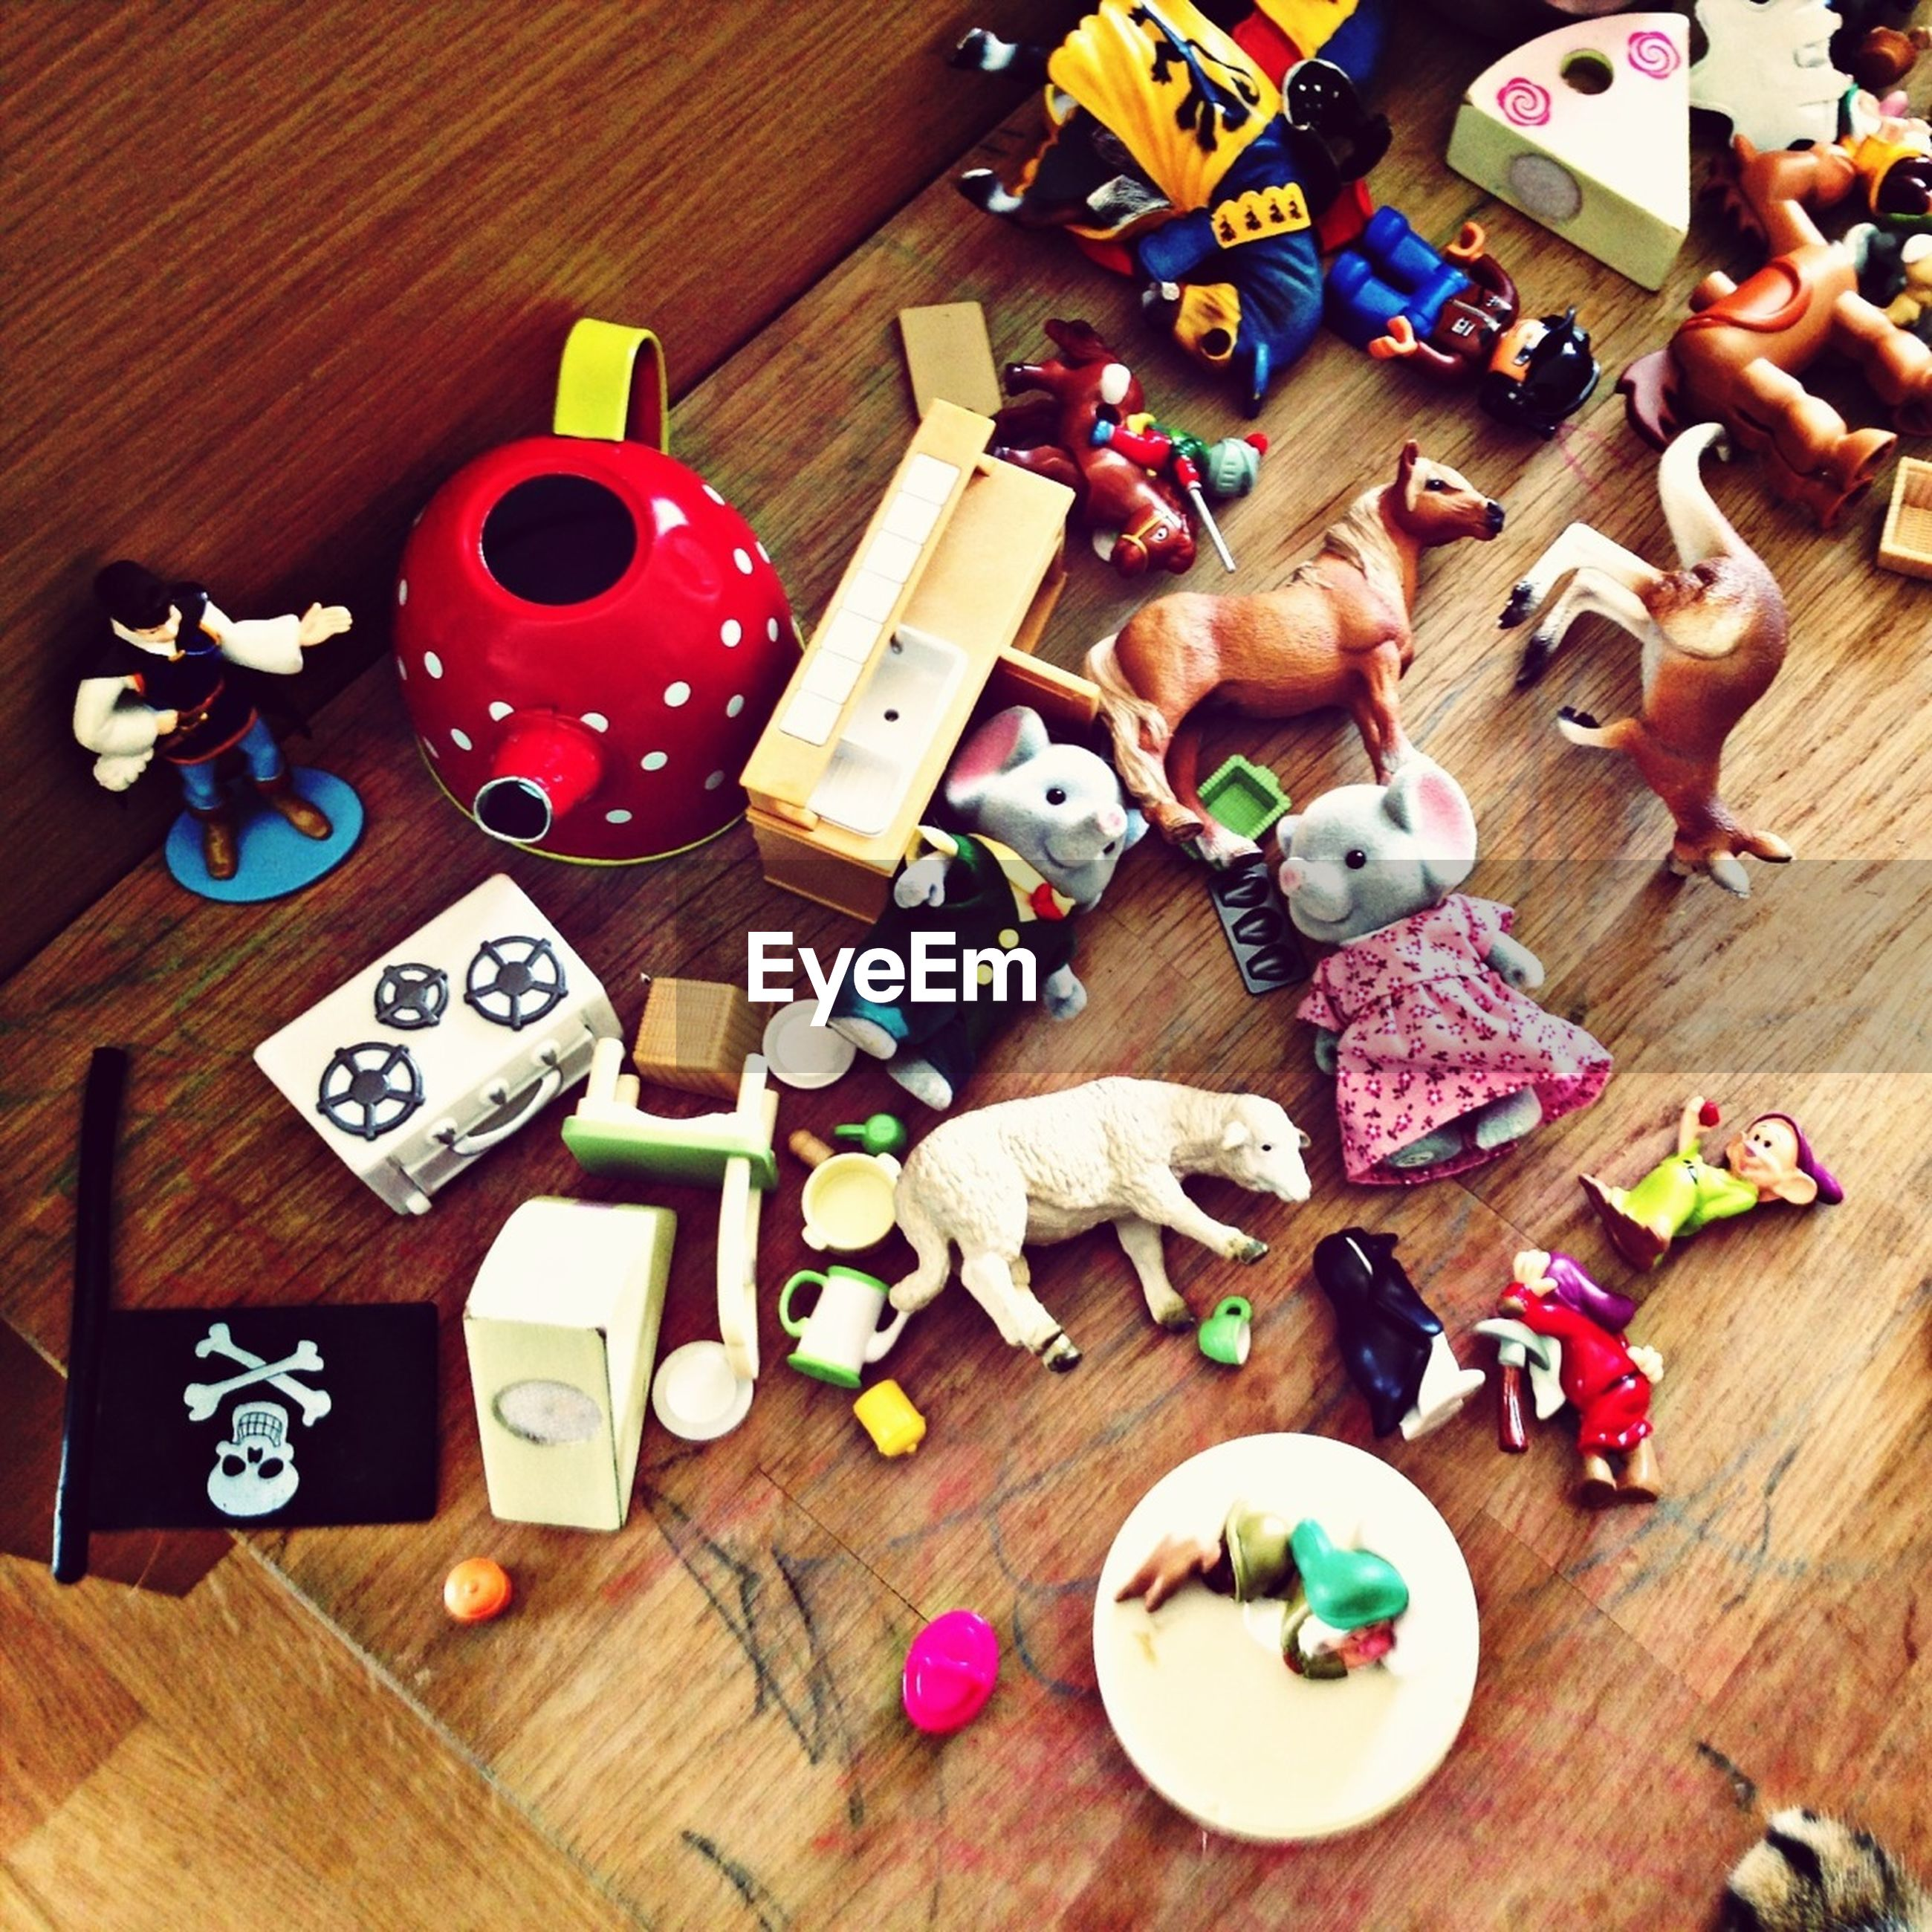 indoors, table, high angle view, wood - material, variation, large group of objects, still life, multi colored, arrangement, wooden, abundance, choice, directly above, toy, collection, close-up, childhood, creativity, no people, art and craft